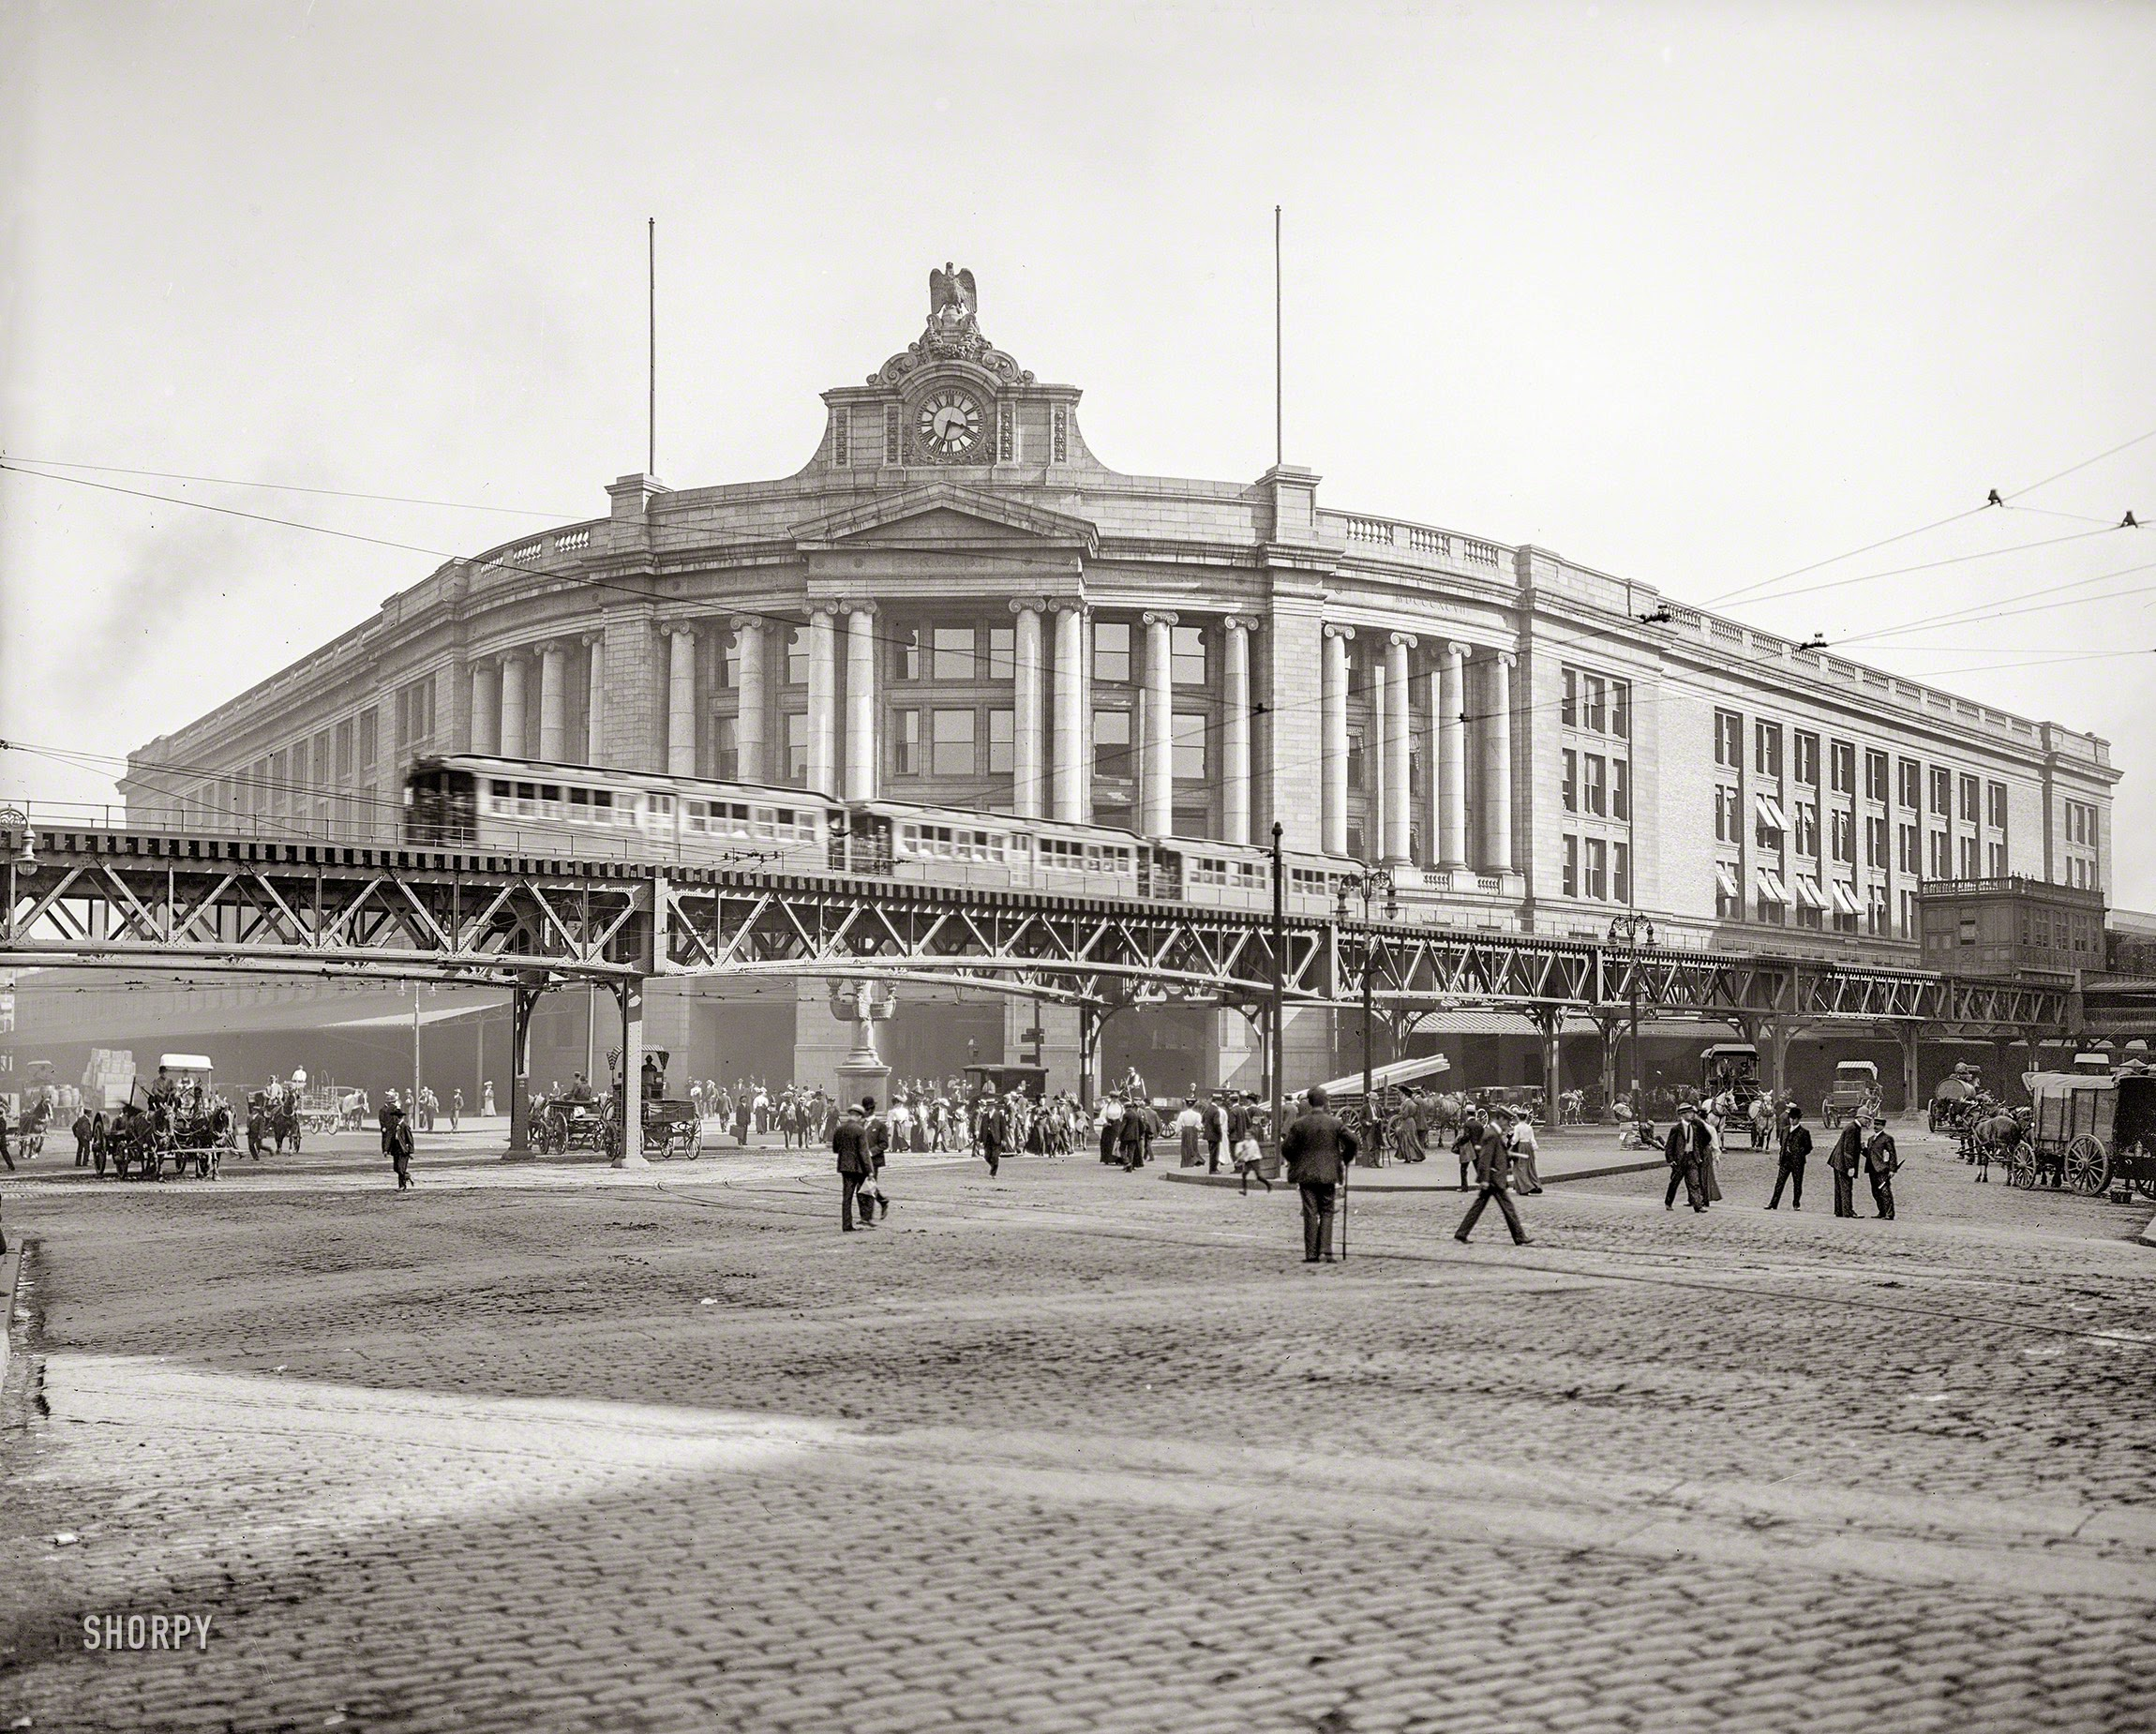 South Station, with the Atlantic Avenue Elevated Railway in the foreground  [© Detroit Publishing Co. courtesy of BPL Digital Commonwealth Project]